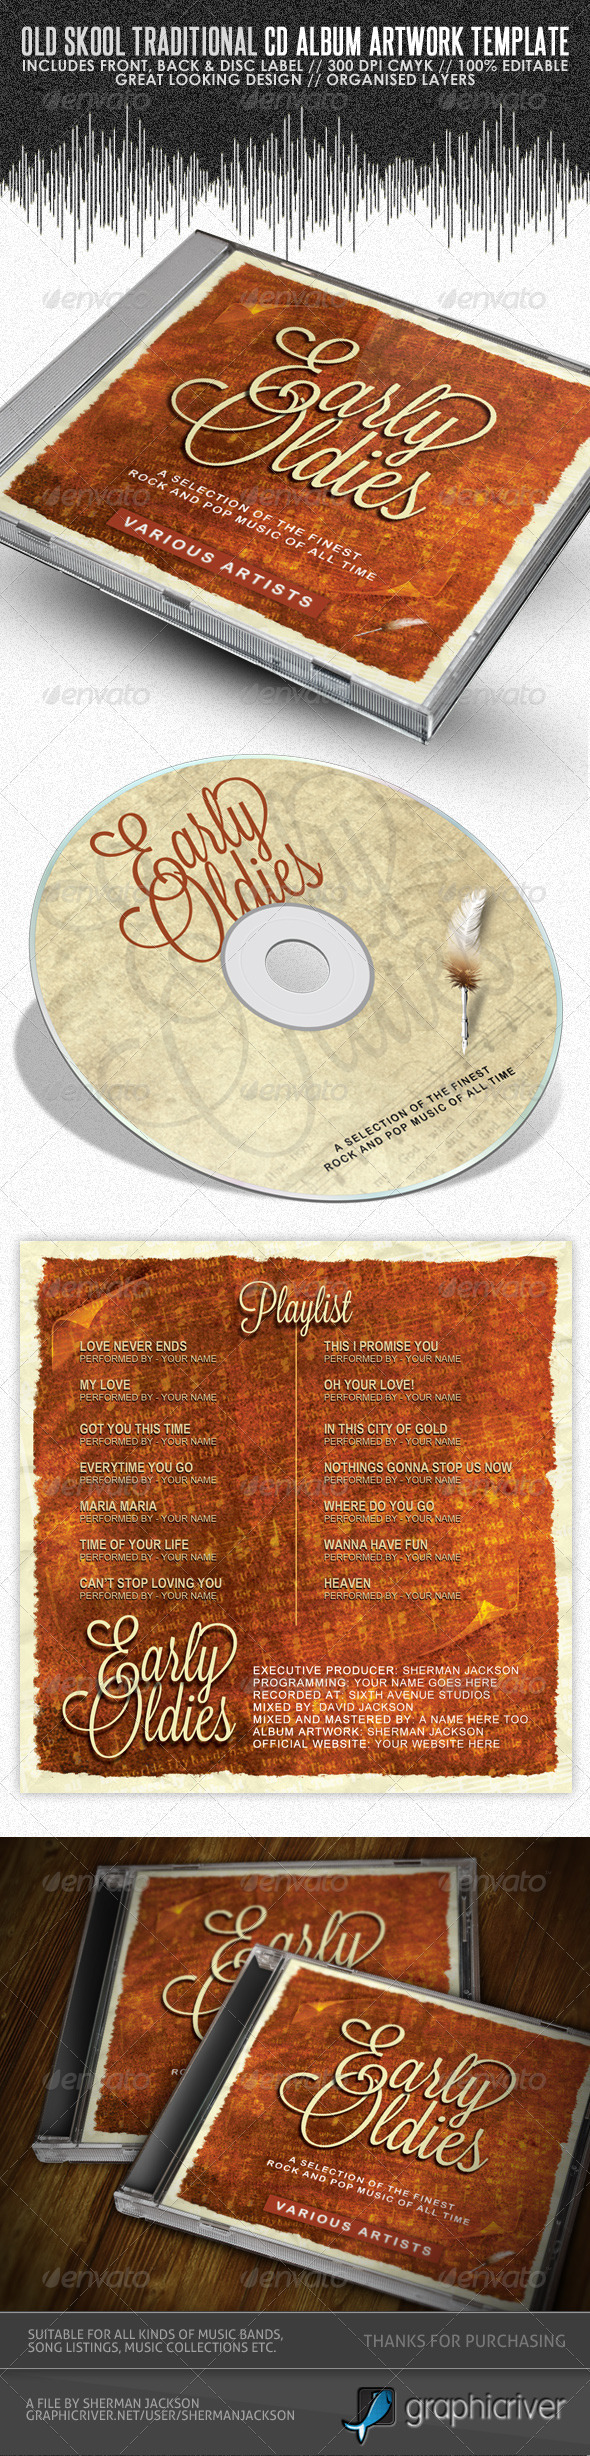 Old Skool Traditional CD Cover Artwork Template - CD & DVD Artwork Print Templates